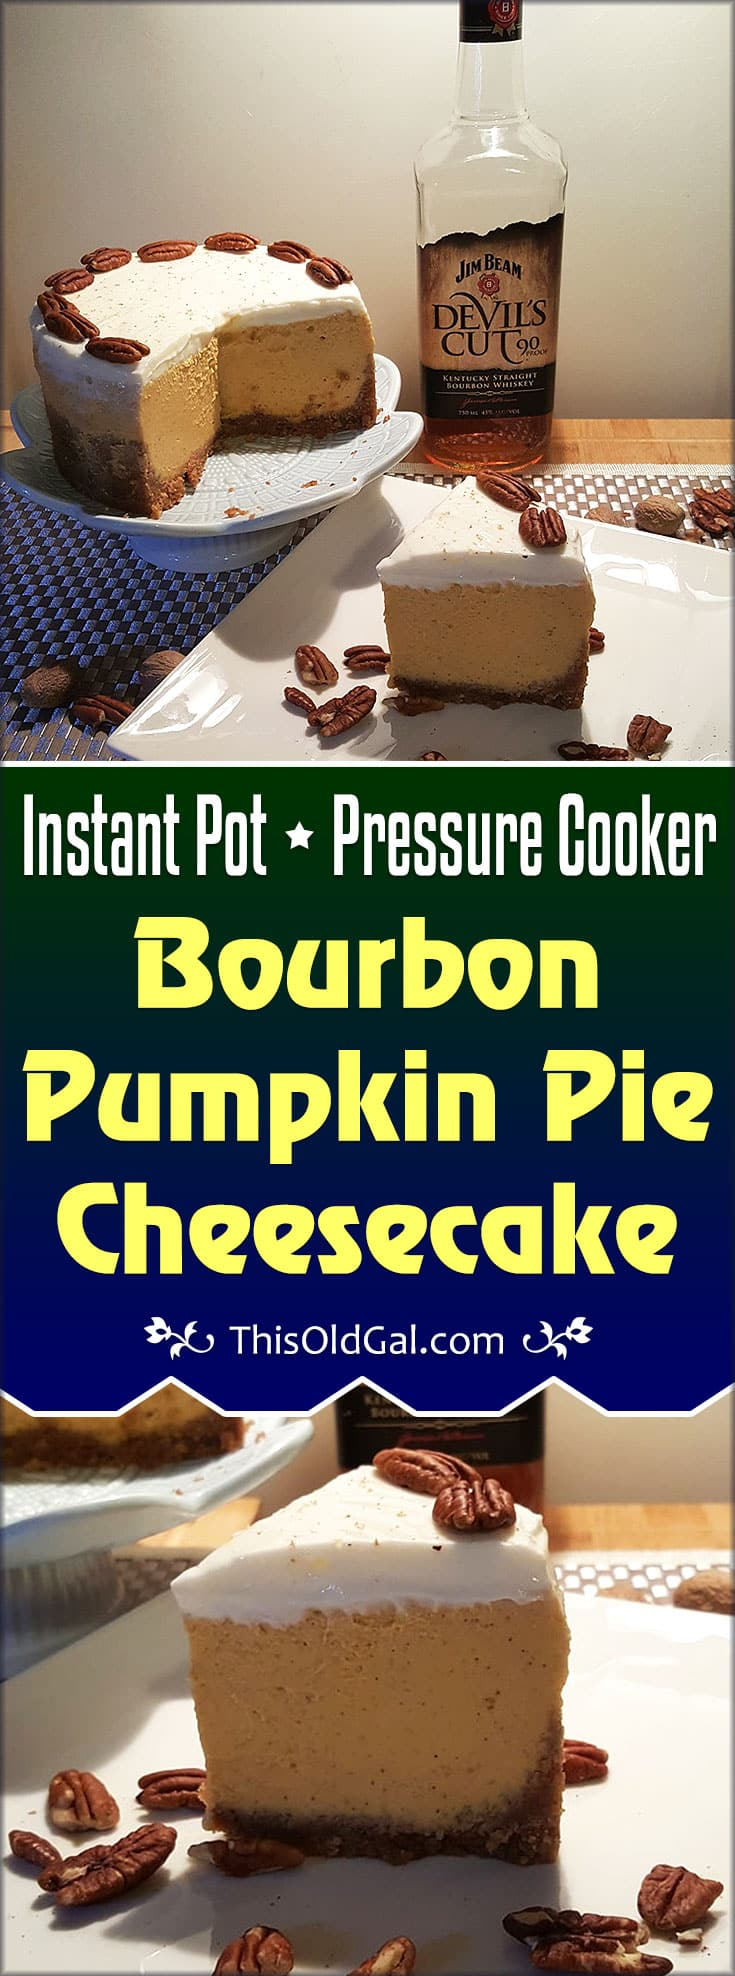 Pressure Cooker Bourbon Pumpkin Pie Cheesecake (Pake)